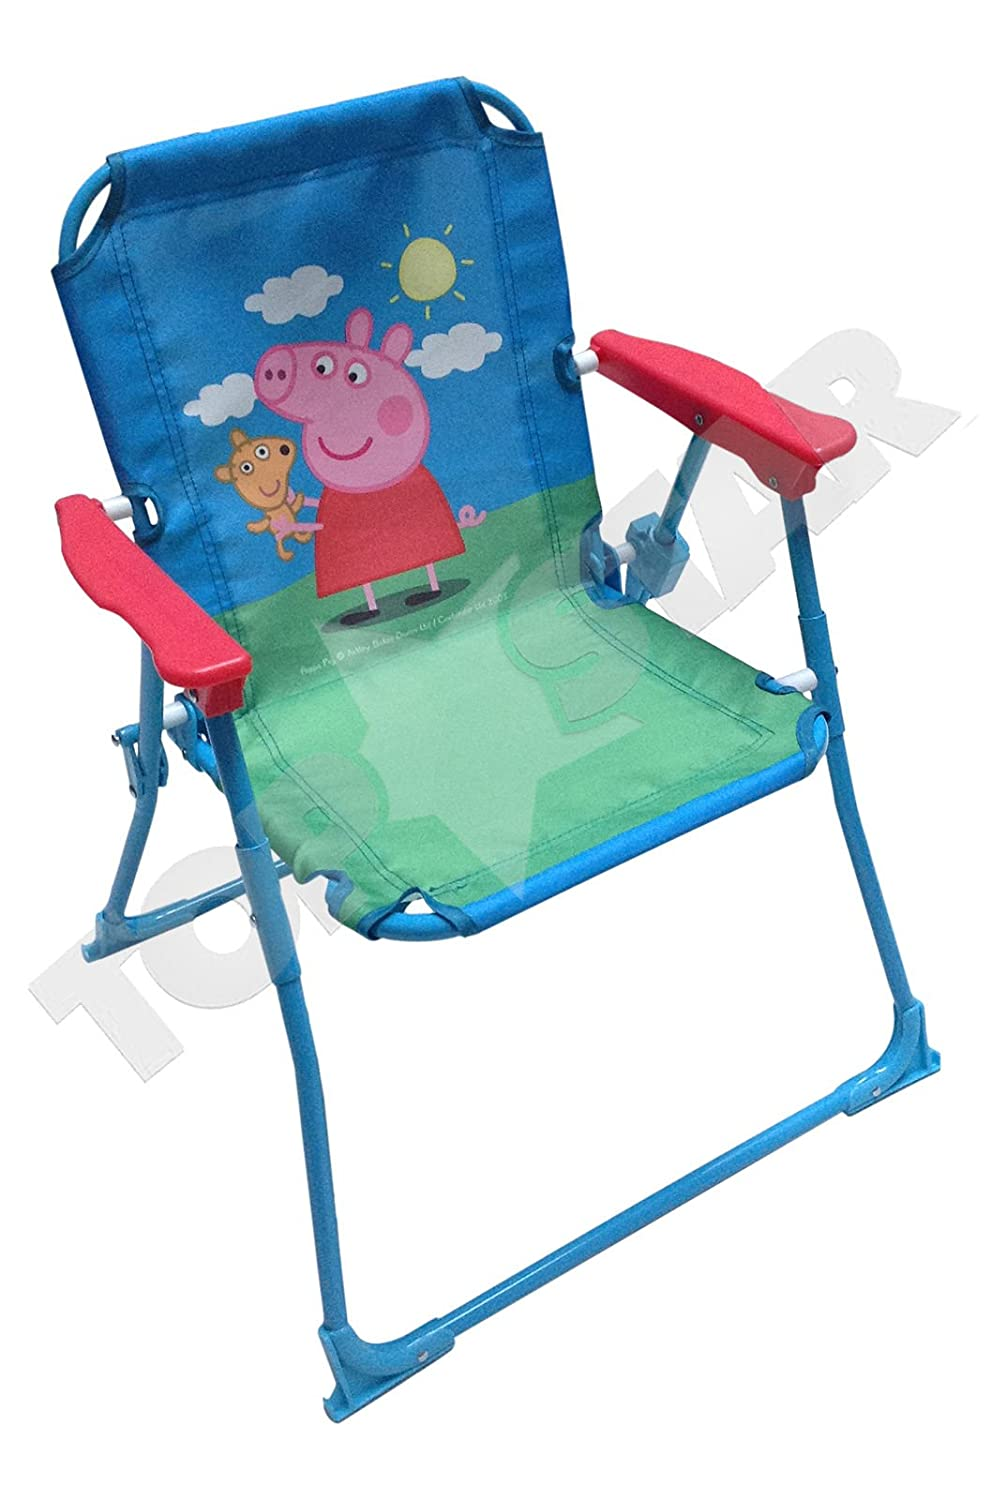 Peppa Pig Childrenu0027s DeckChair - Kids Deckchair - Beach chair - Mini Deckchair Amazon.co.uk Garden u0026 Outdoors  sc 1 st  Amazon UK & Peppa Pig Childrenu0027s DeckChair - Kids Deckchair - Beach chair - Mini ...